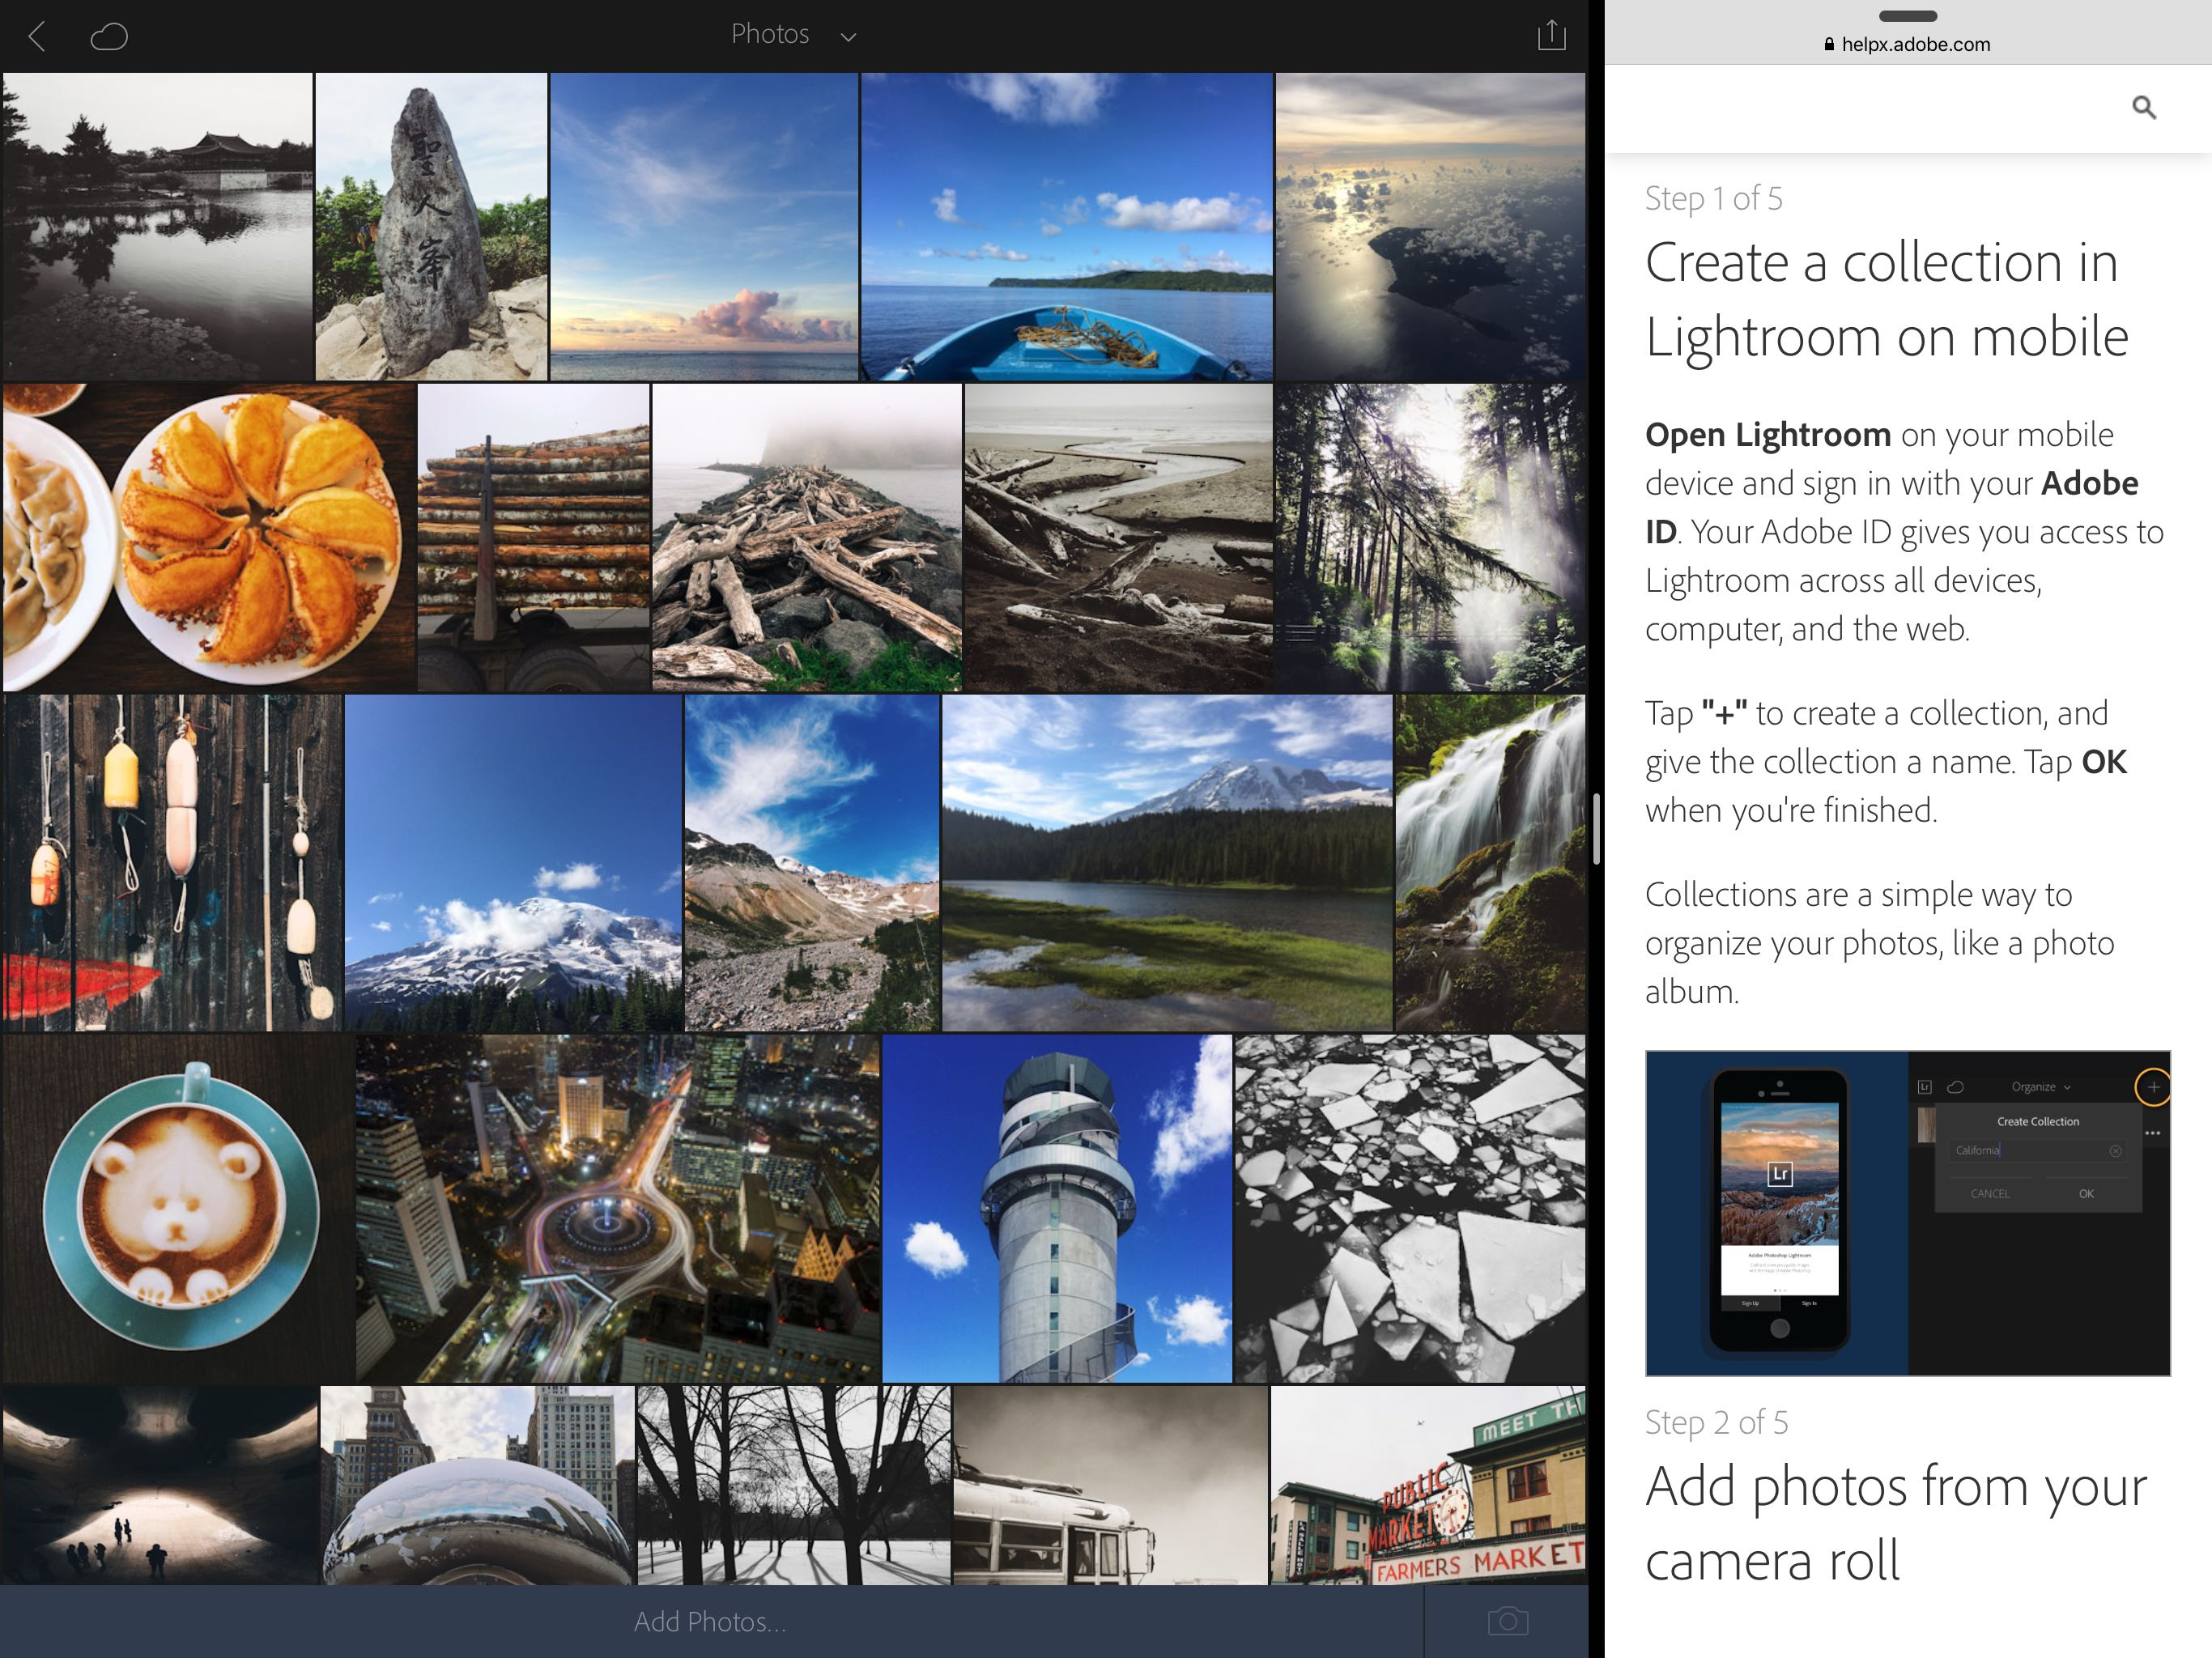 Lightroom for iOS gains iPad Pro & 3D Touch support, camera